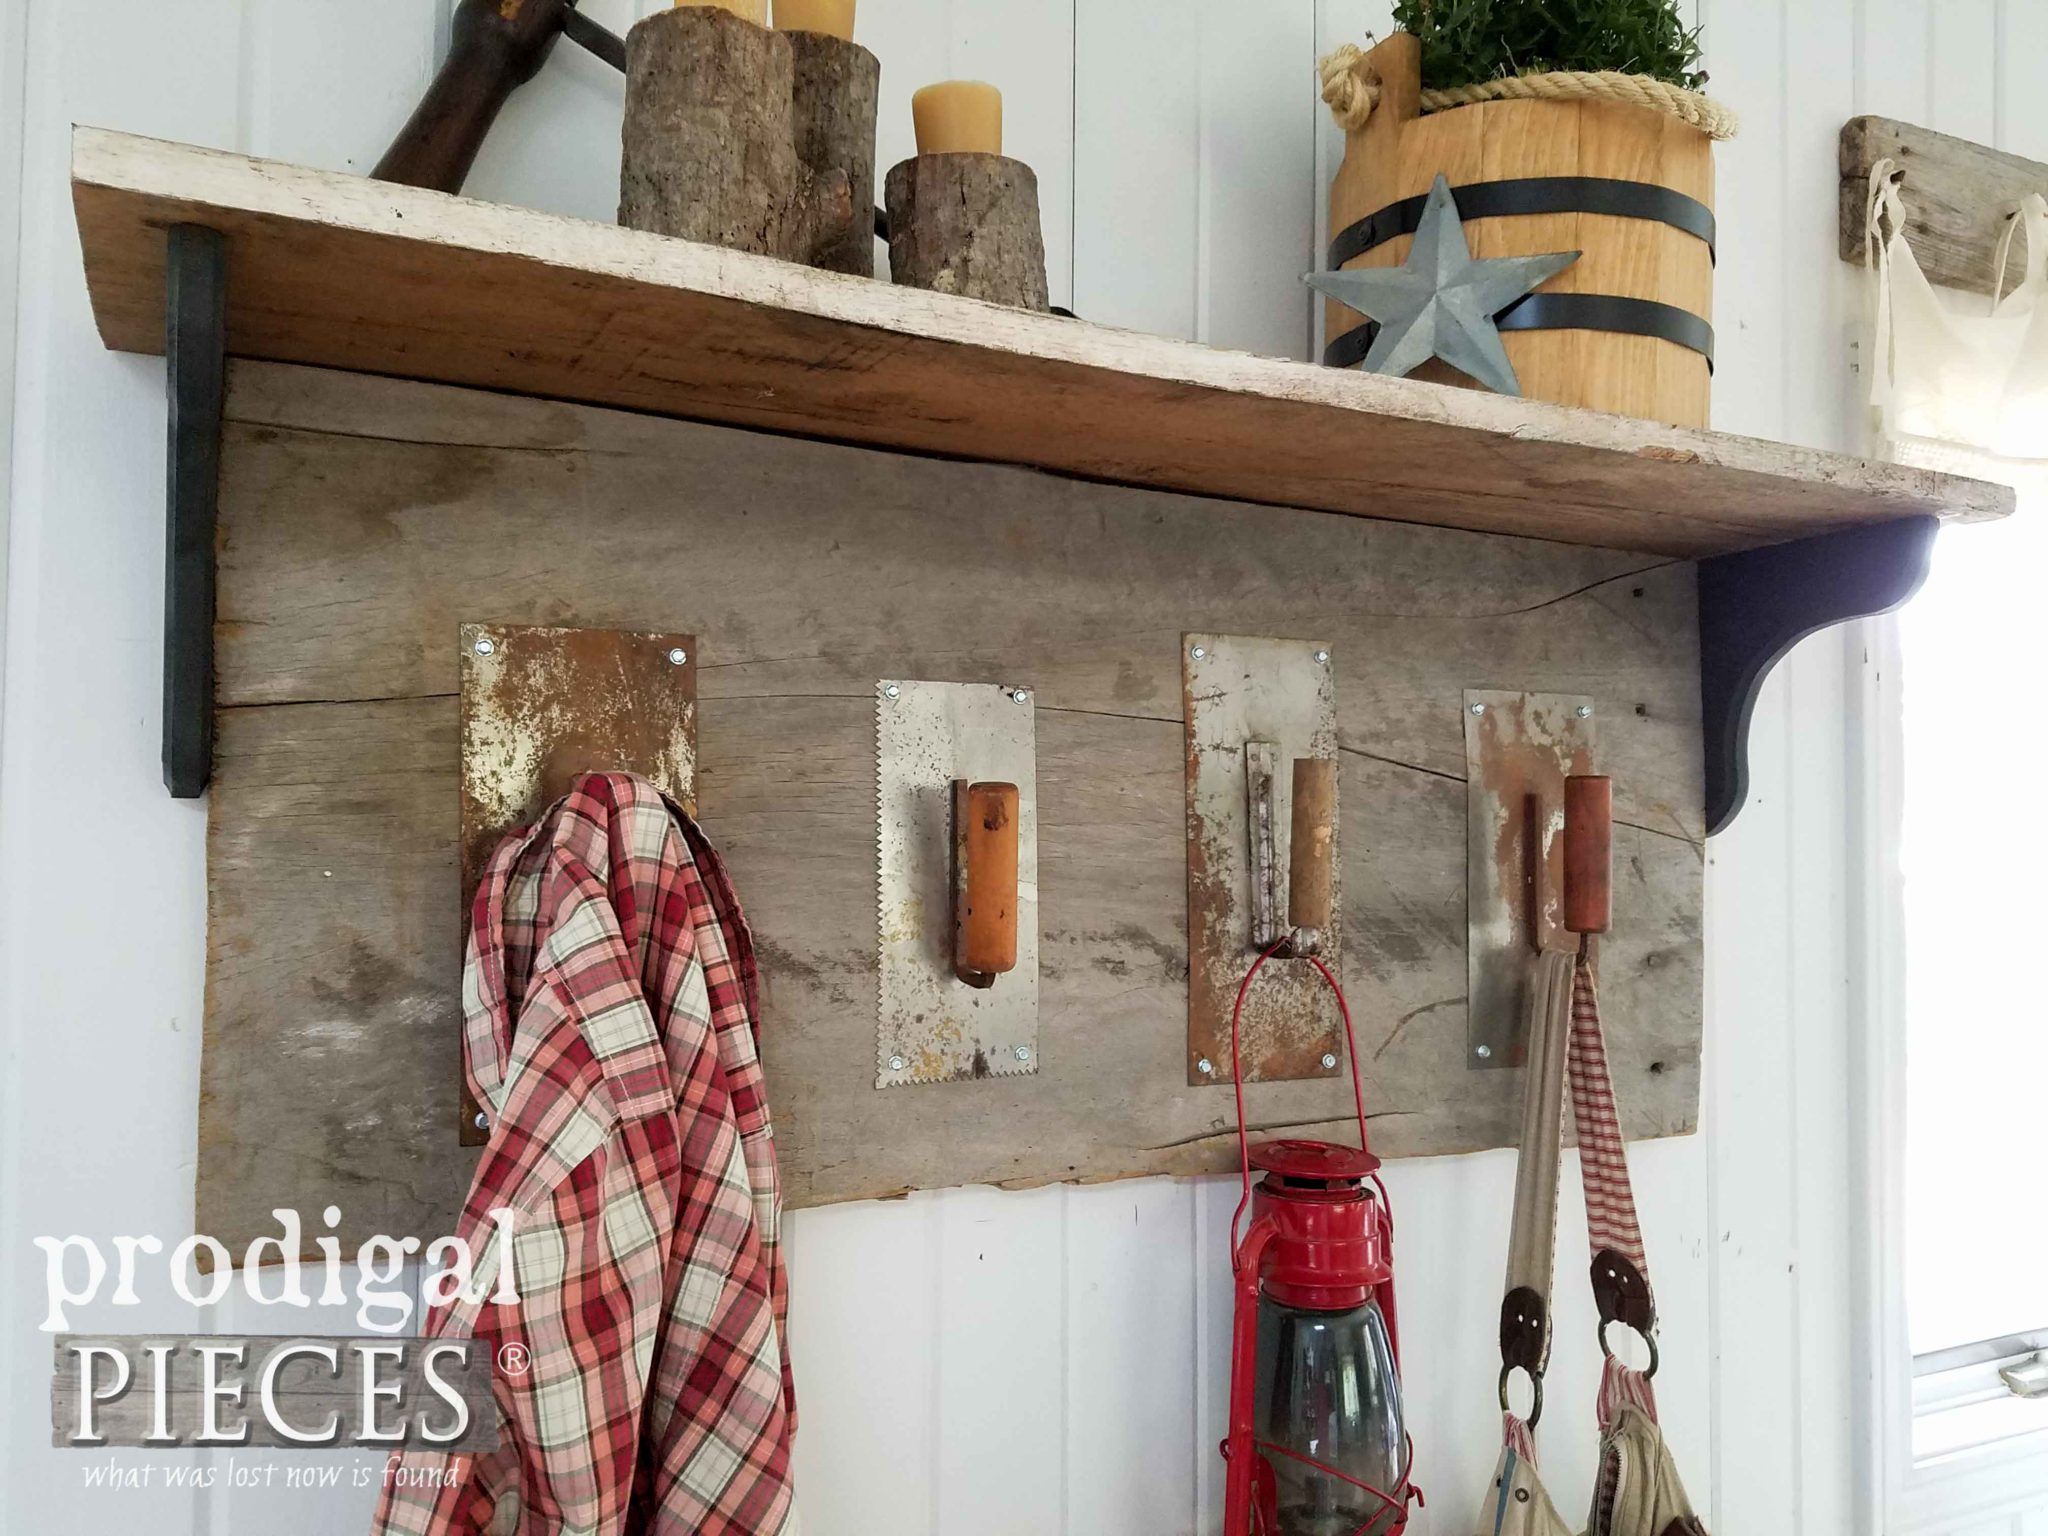 Upcycled Trowel Coat Rack with Shelf by Prodigal Pieces | prodigalpieces.com